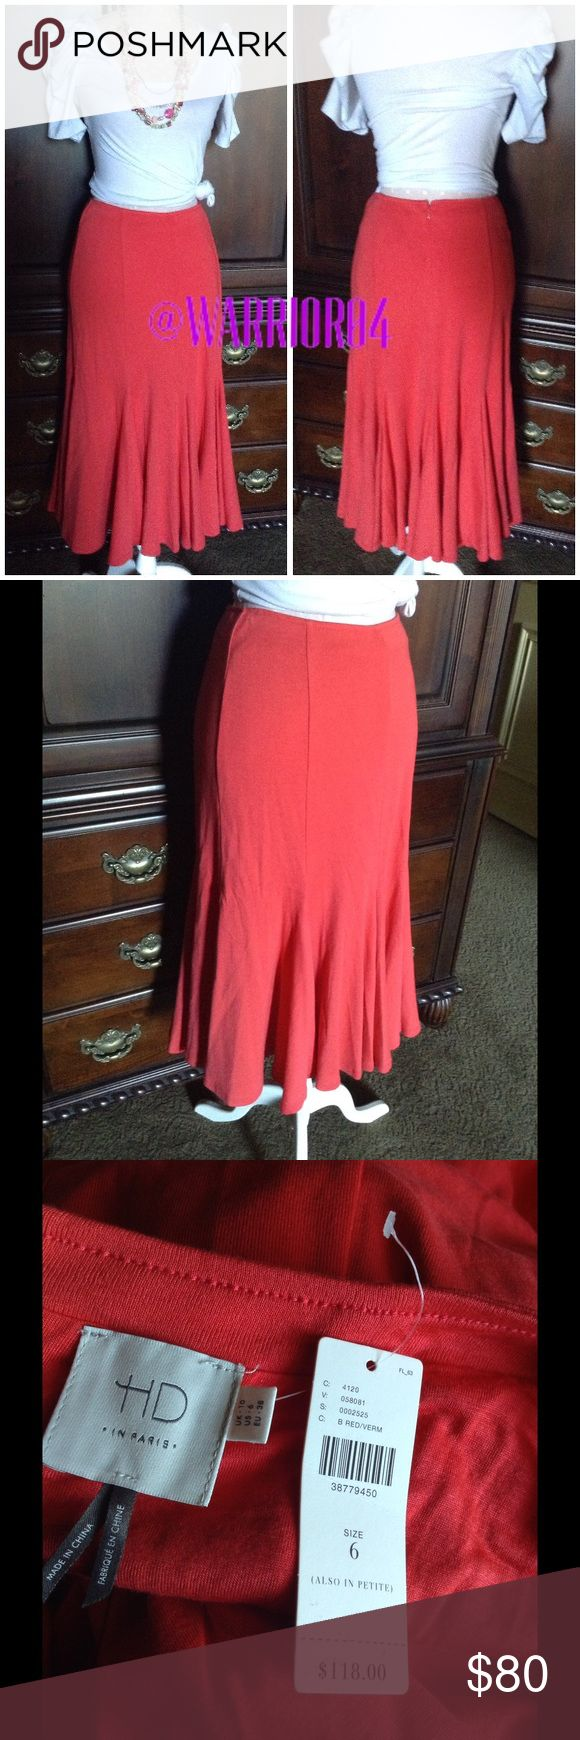 "Anthropologie Trumpet Skirt Coral Red/Verm NWT Anthropologie Trumpet Skirt Coral Red/Verm NWT HD in Paris Please note this is a CORAL Red Lyocell knit Flared hem Back zip Machine wash Imported Style No. 4120580812525 Dimensions Regular: 22""L Anthropologie Skirts"